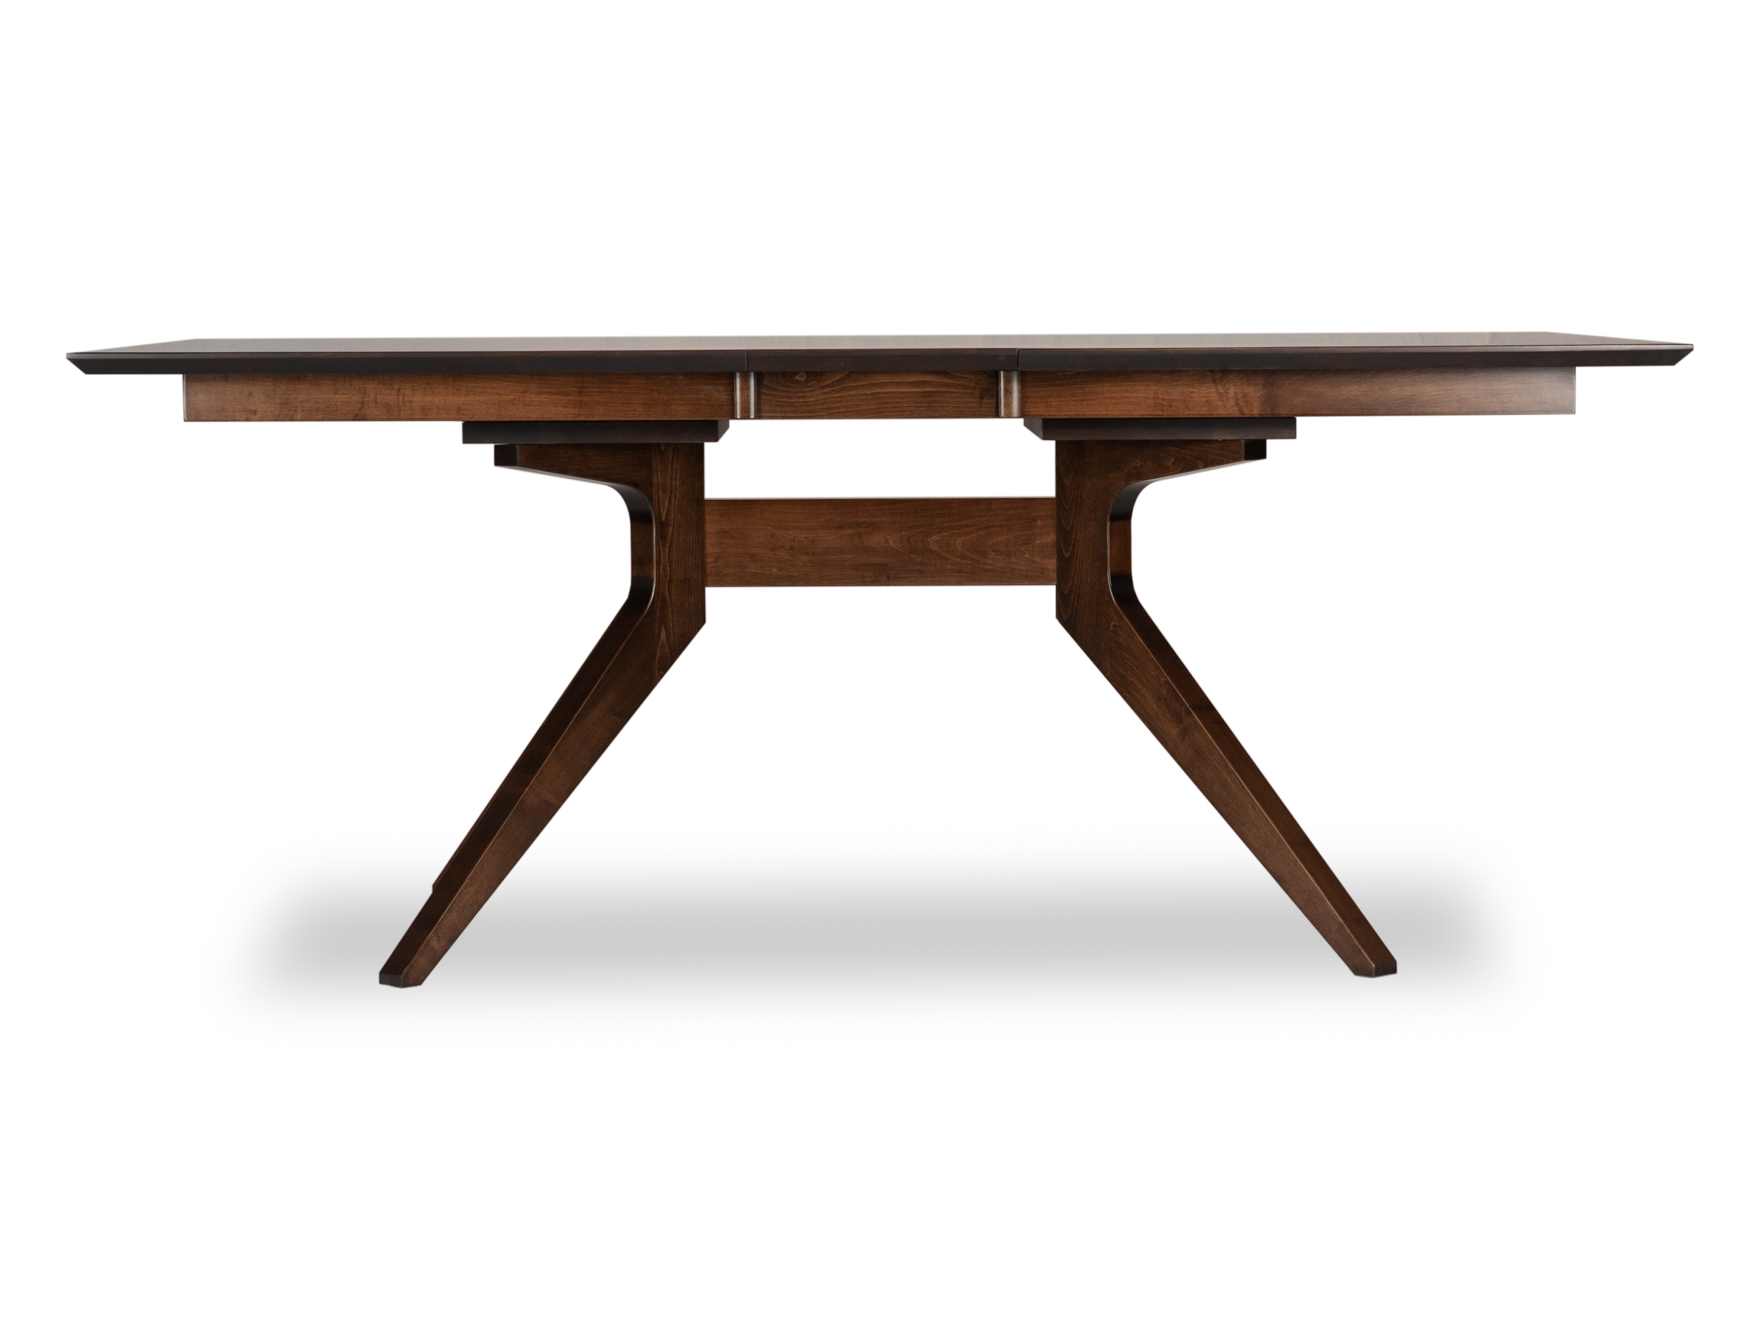 010_Woodcraft_Furniture_MalmoTable_FrtB-1-1.jpg